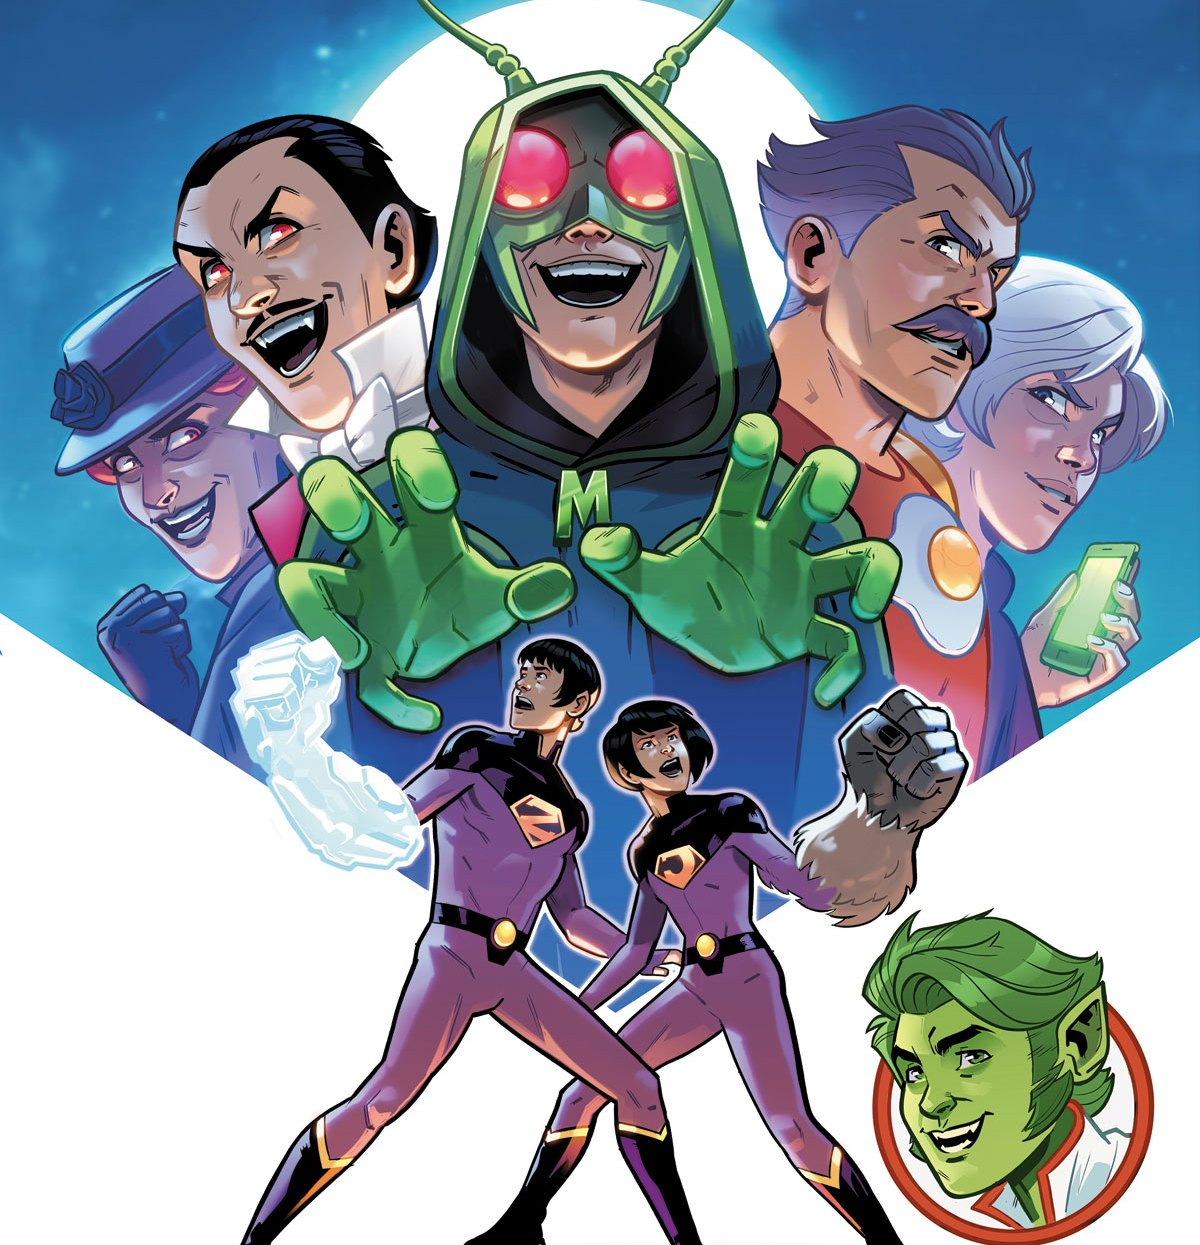 Wonder Twins #2 review: League of Annoyance!